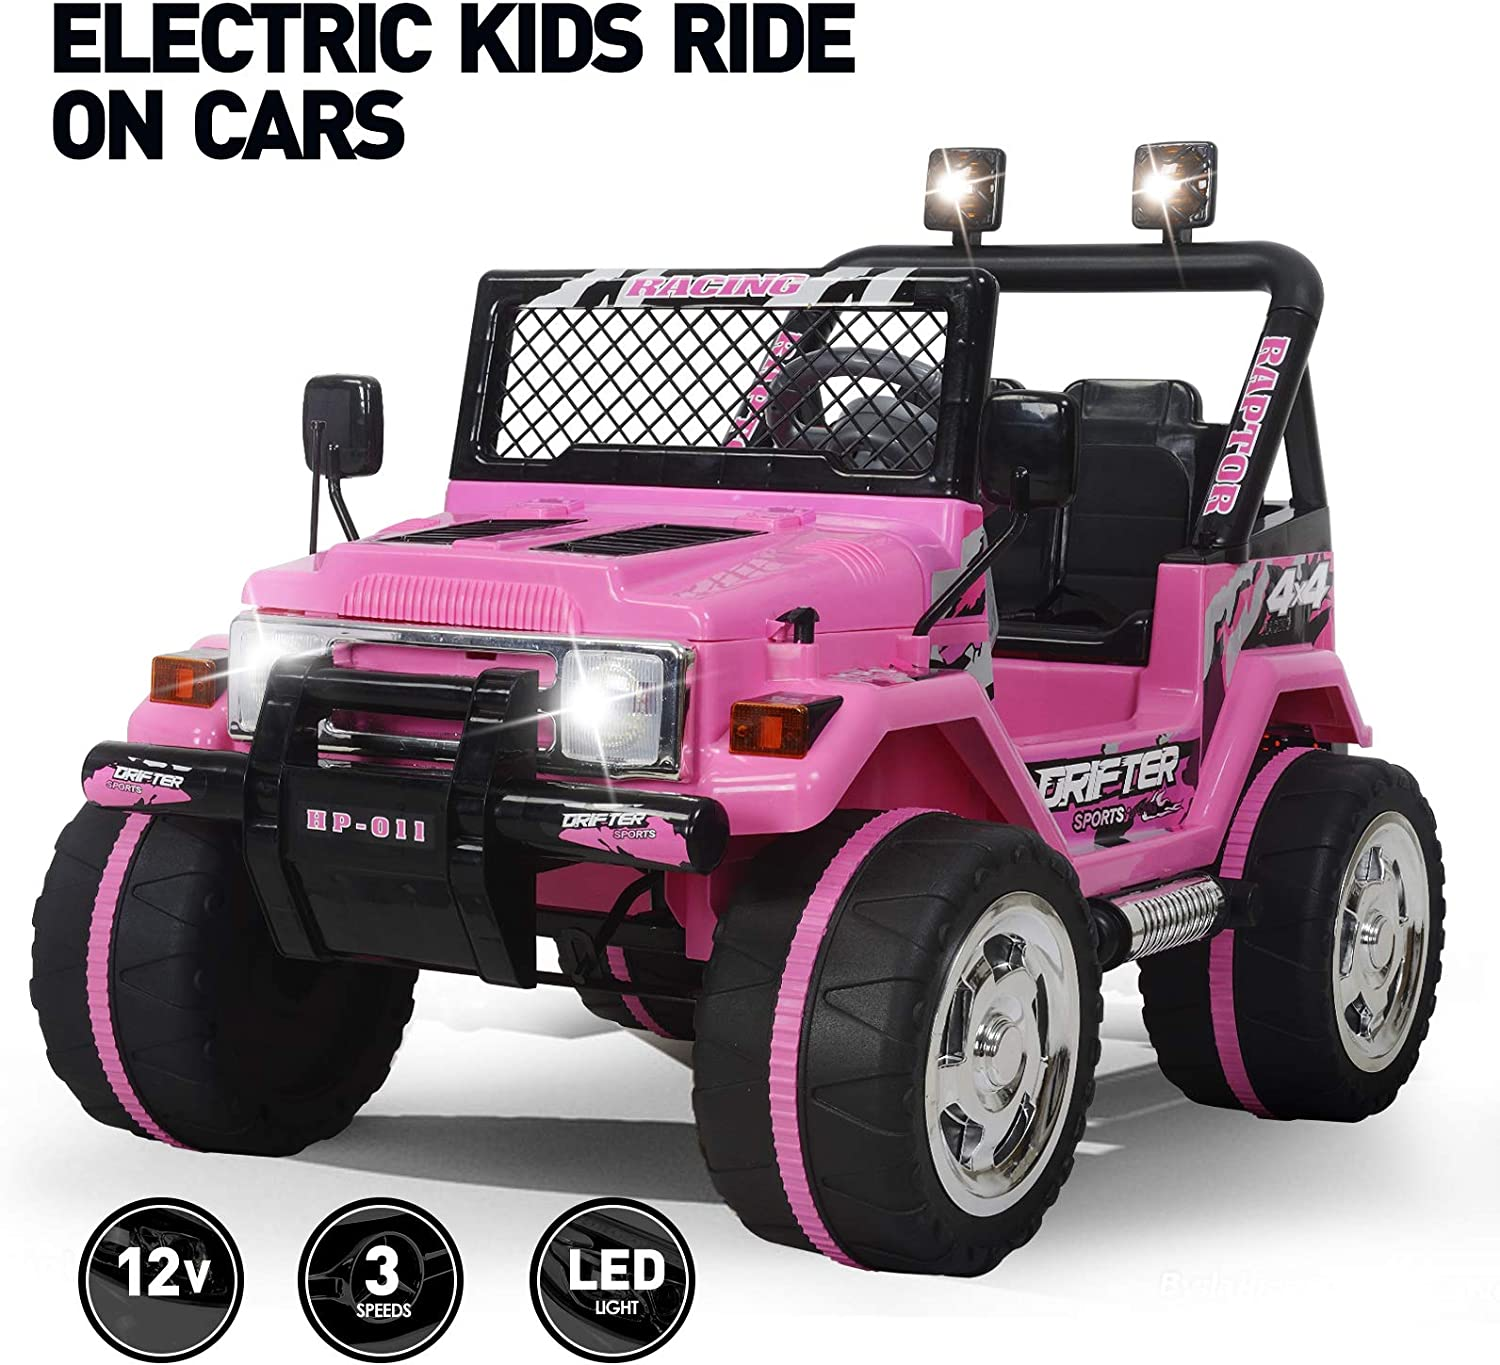 Amazon.com: Fitnessclub 12V Kids Ride On Cars with Remote Control,Children's  Electric Cars Motorized Cars for Kids LED Lights 3 Speeds Electric Toy for  Kids USB Pink: Toys & Games